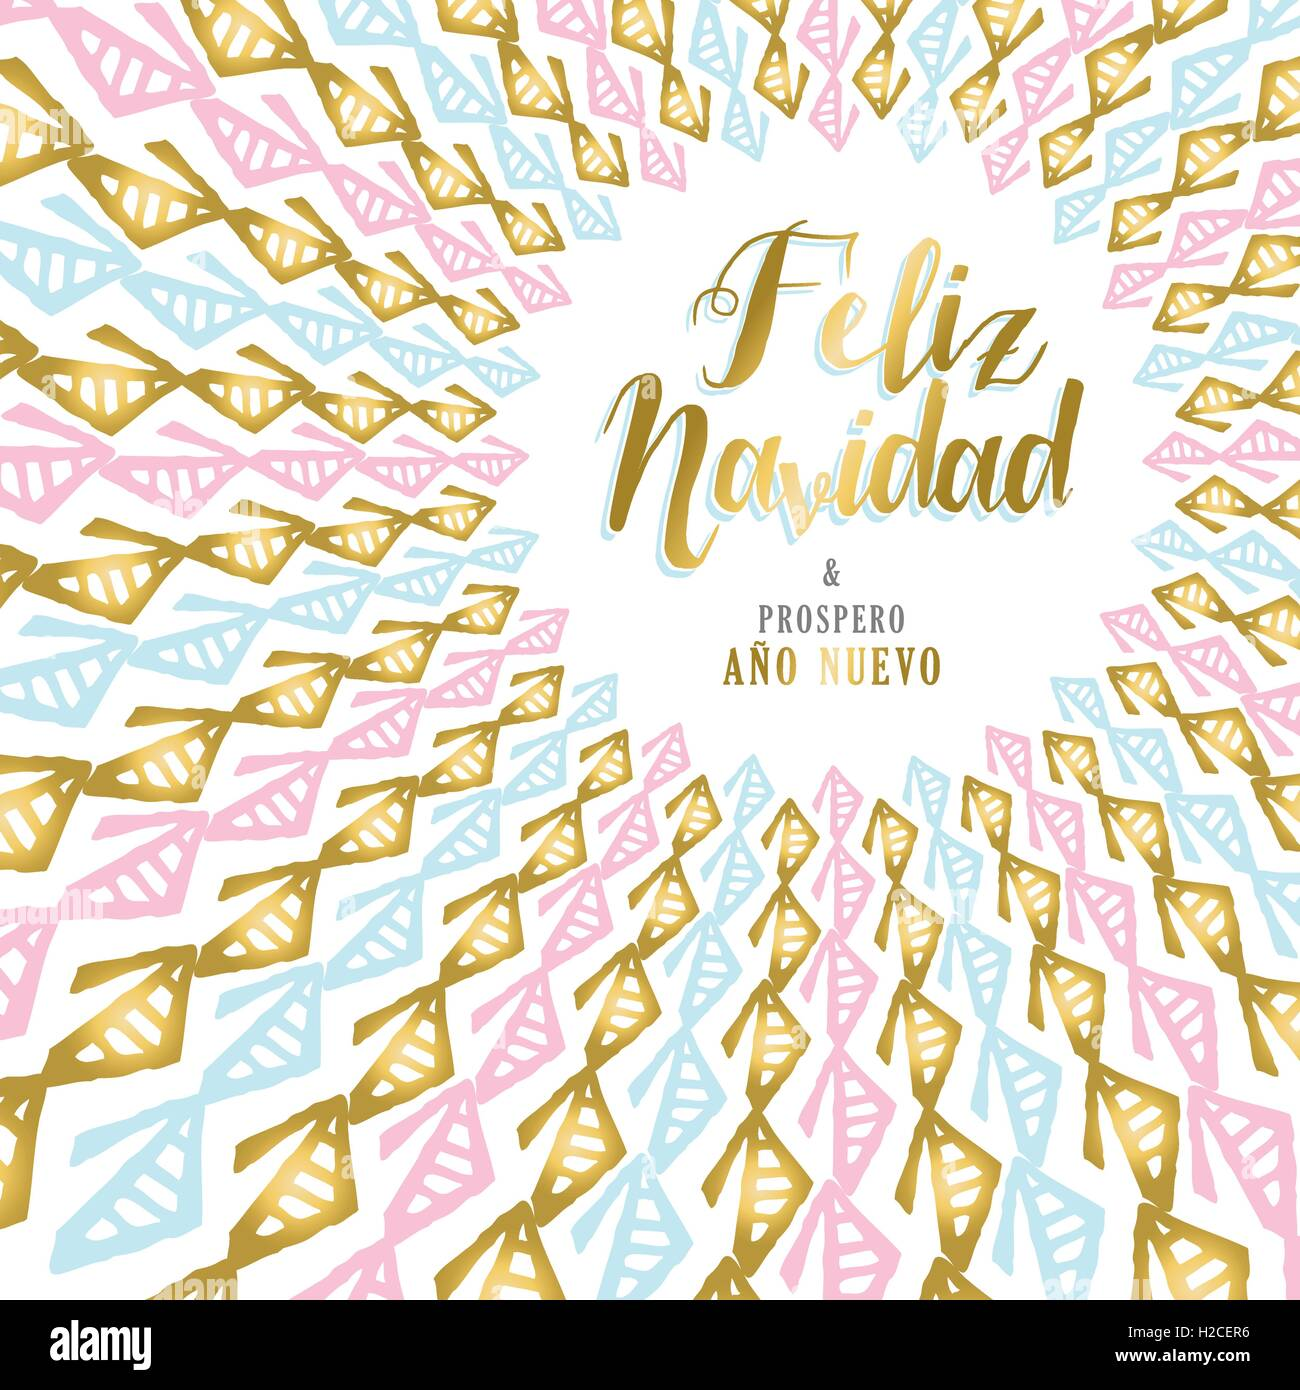 merry christmas happy new year design in spanish language gold tribal art mandala for holiday greeting card poster or invitat - Merry Christmas And Happy New Year In Spanish